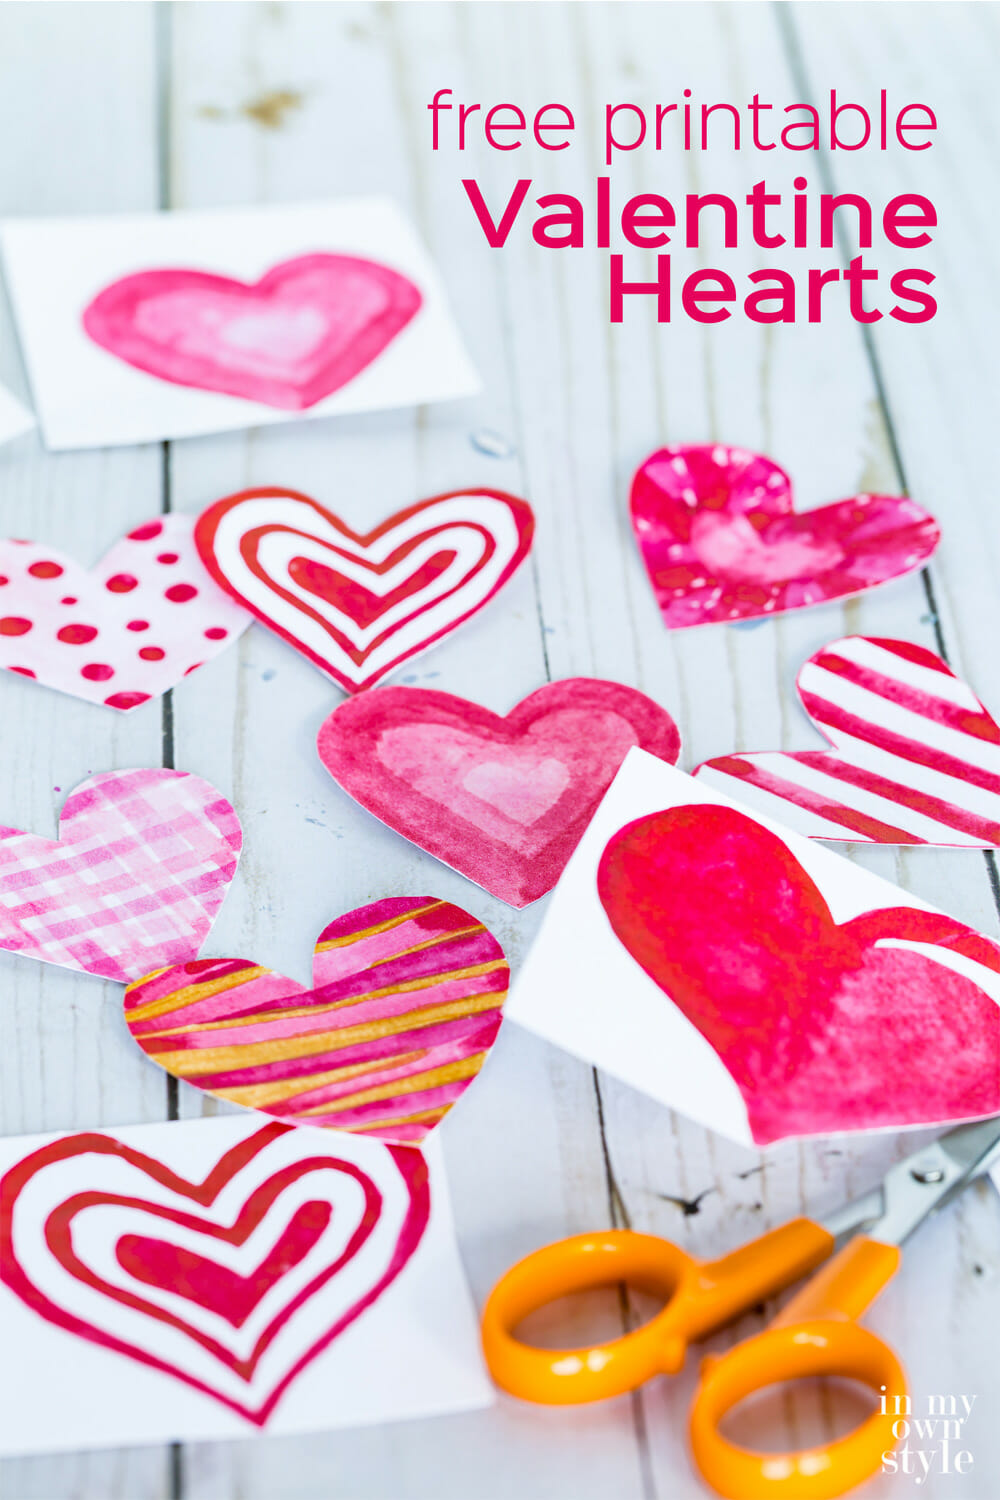 Printable Valentine Hearts & Envelopes